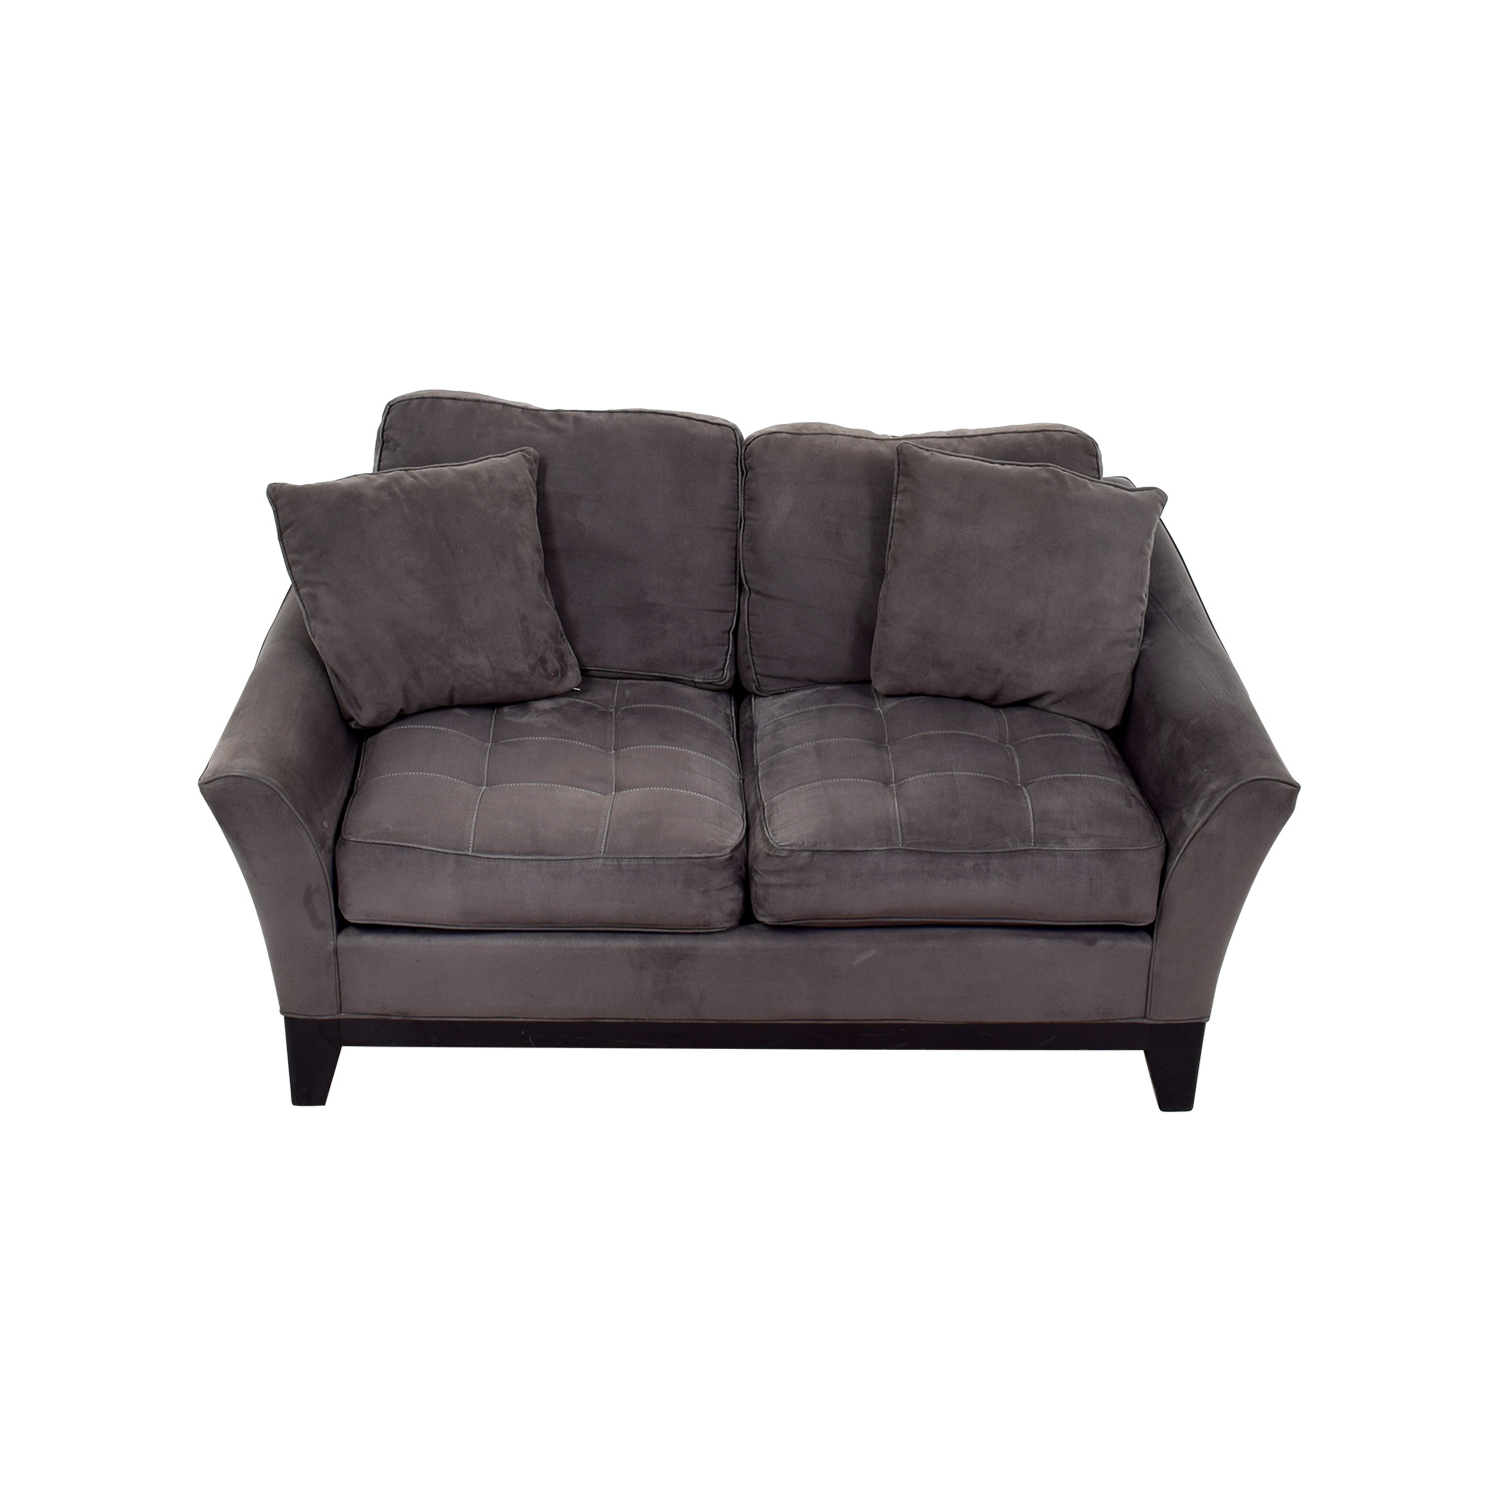 [%75% Off – Raymour & Flanigan Raymour & Flanigan Rory Slate With Regard To 2018 Rory Sofa Chairs|rory Sofa Chairs Intended For Most Recent 75% Off – Raymour & Flanigan Raymour & Flanigan Rory Slate|recent Rory Sofa Chairs With 75% Off – Raymour & Flanigan Raymour & Flanigan Rory Slate|most Recent 75% Off – Raymour & Flanigan Raymour & Flanigan Rory Slate Inside Rory Sofa Chairs%] (View 10 of 20)